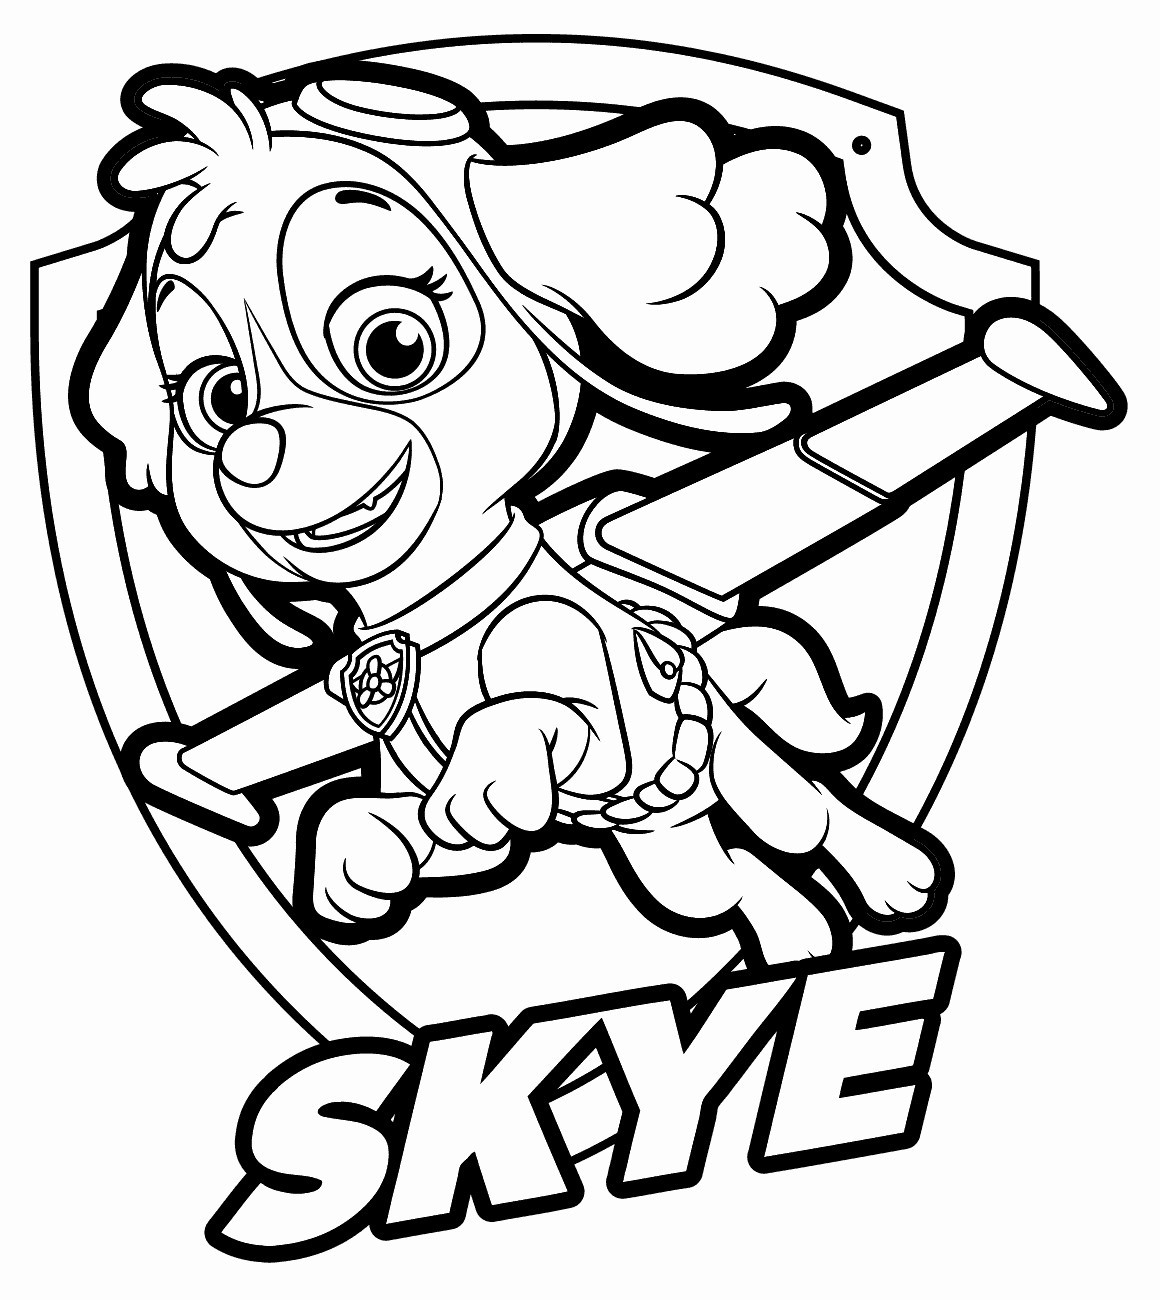 paw patrol coloring pages paw patrol to print for free paw patrol kids coloring pages paw coloring pages patrol